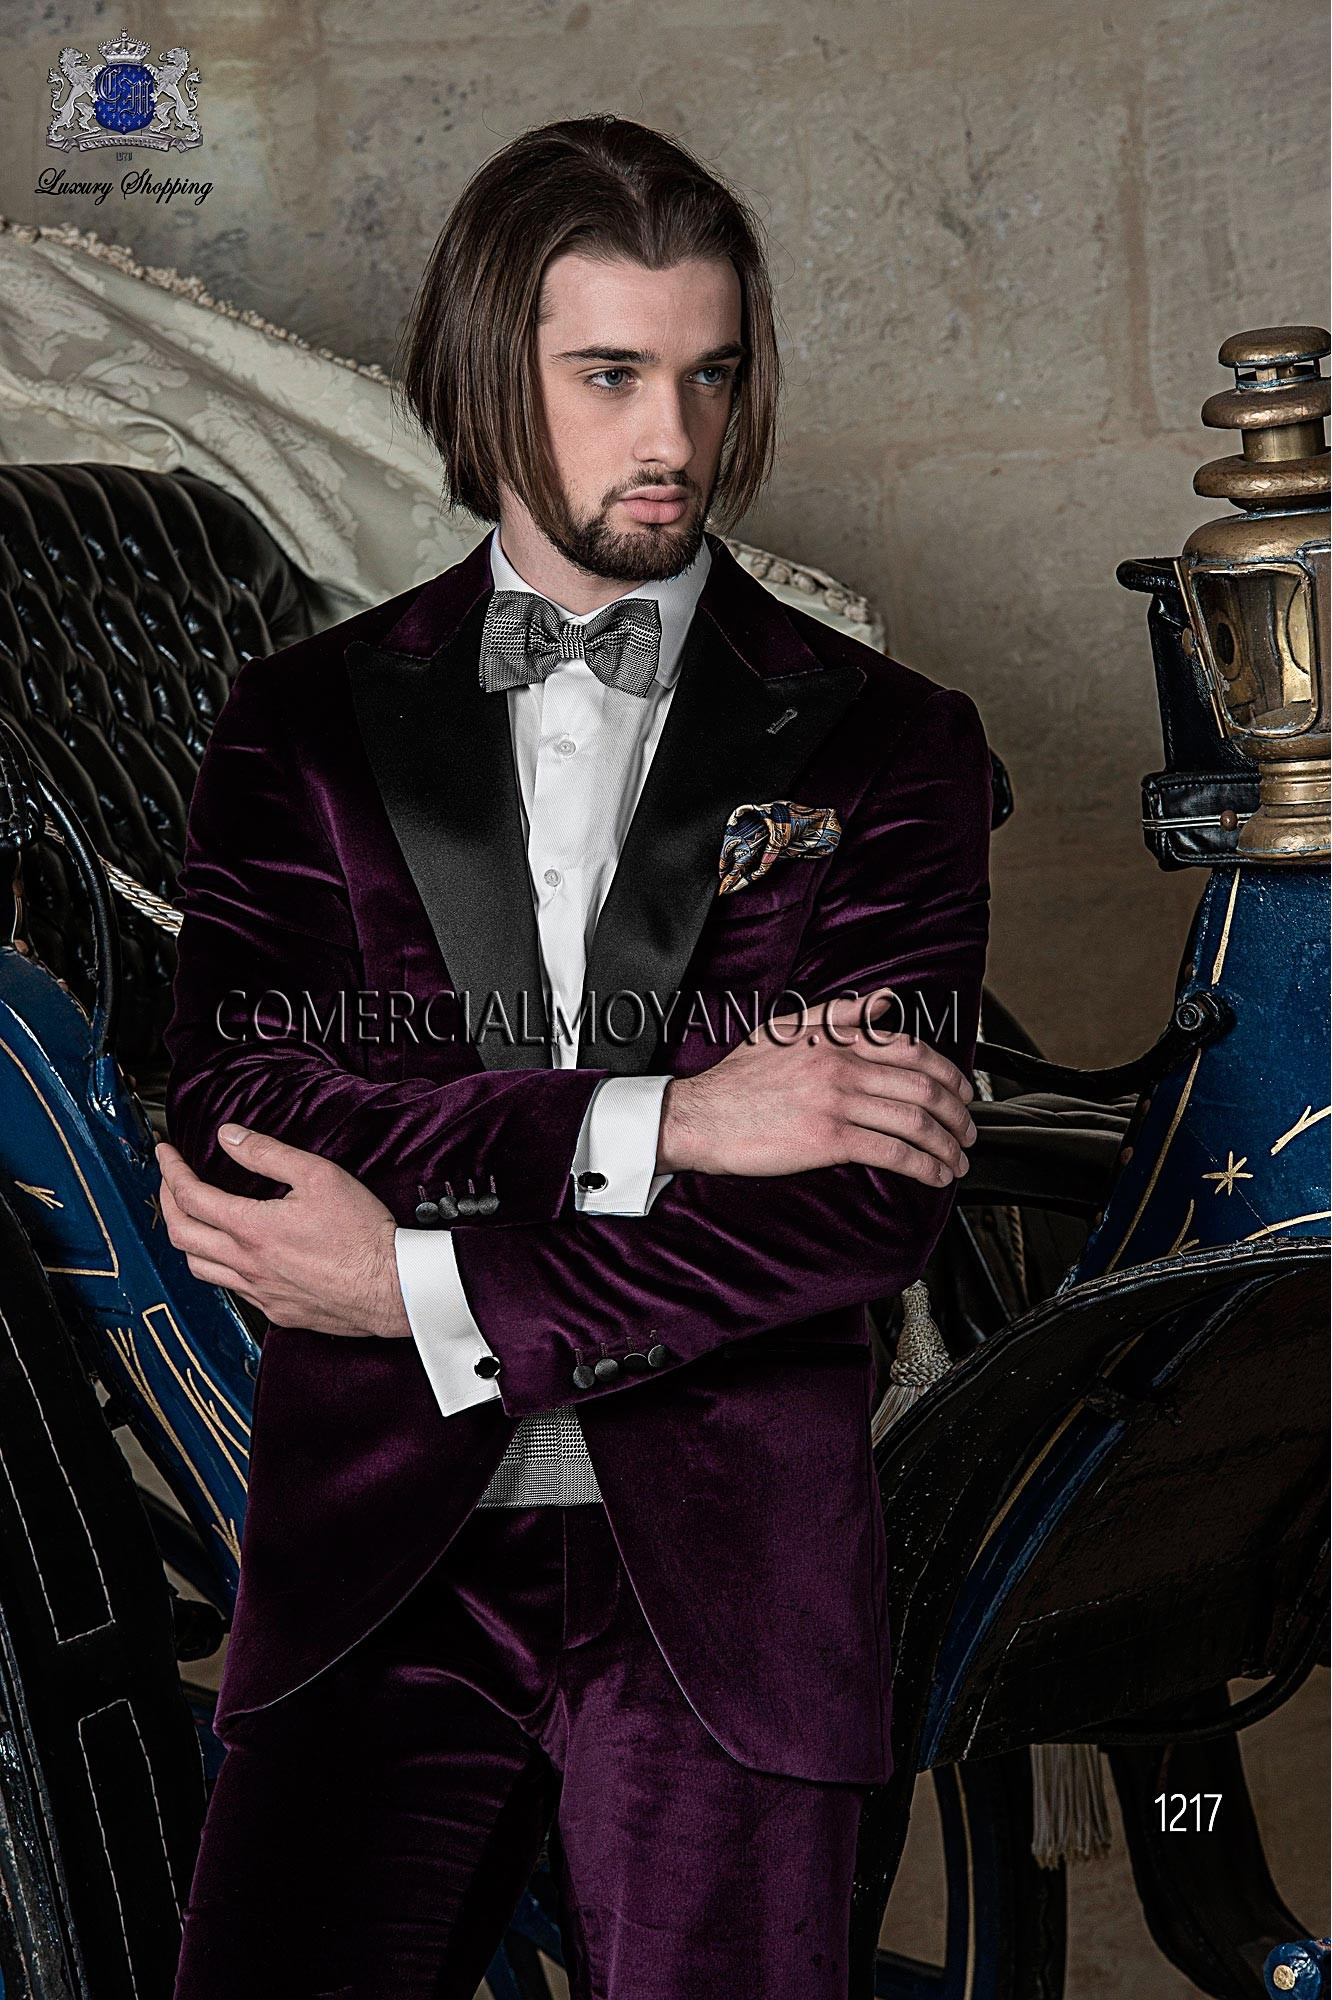 Black Tie purple men wedding suit model 1217 Ottavio Nuccio Gala